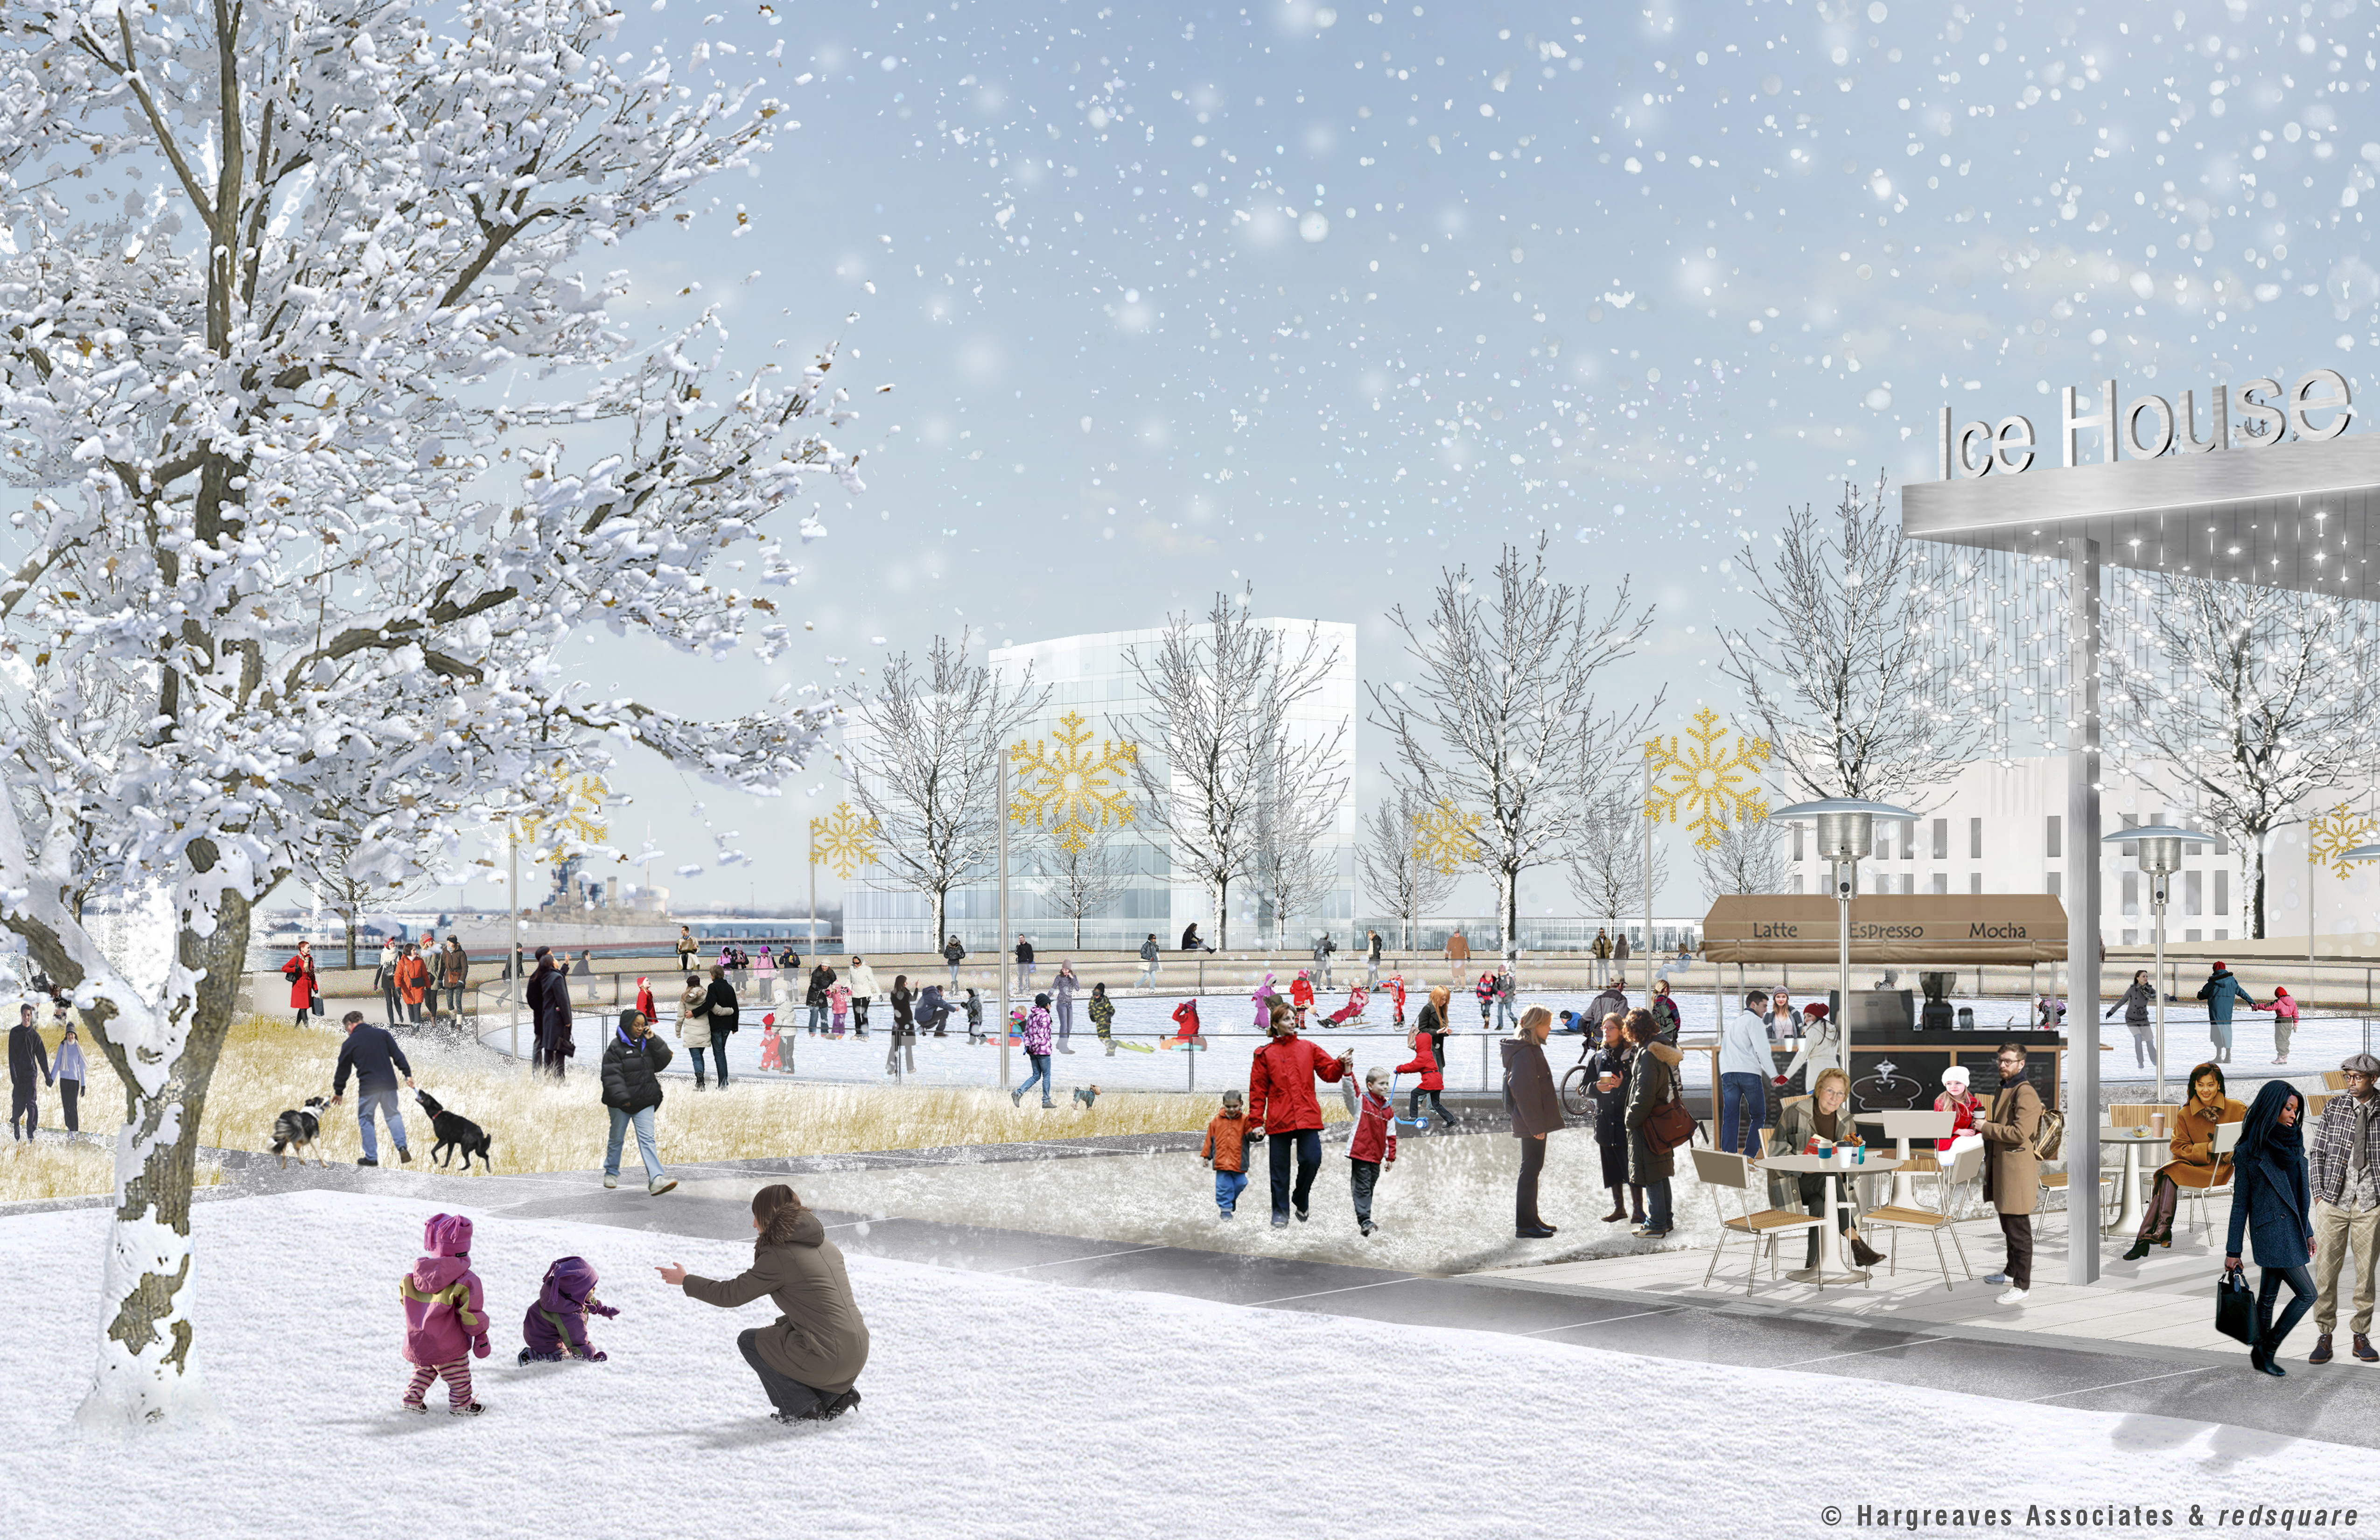 Penn's Landing Park in winter with ice rink, © Hargreaves Associates & redsquare